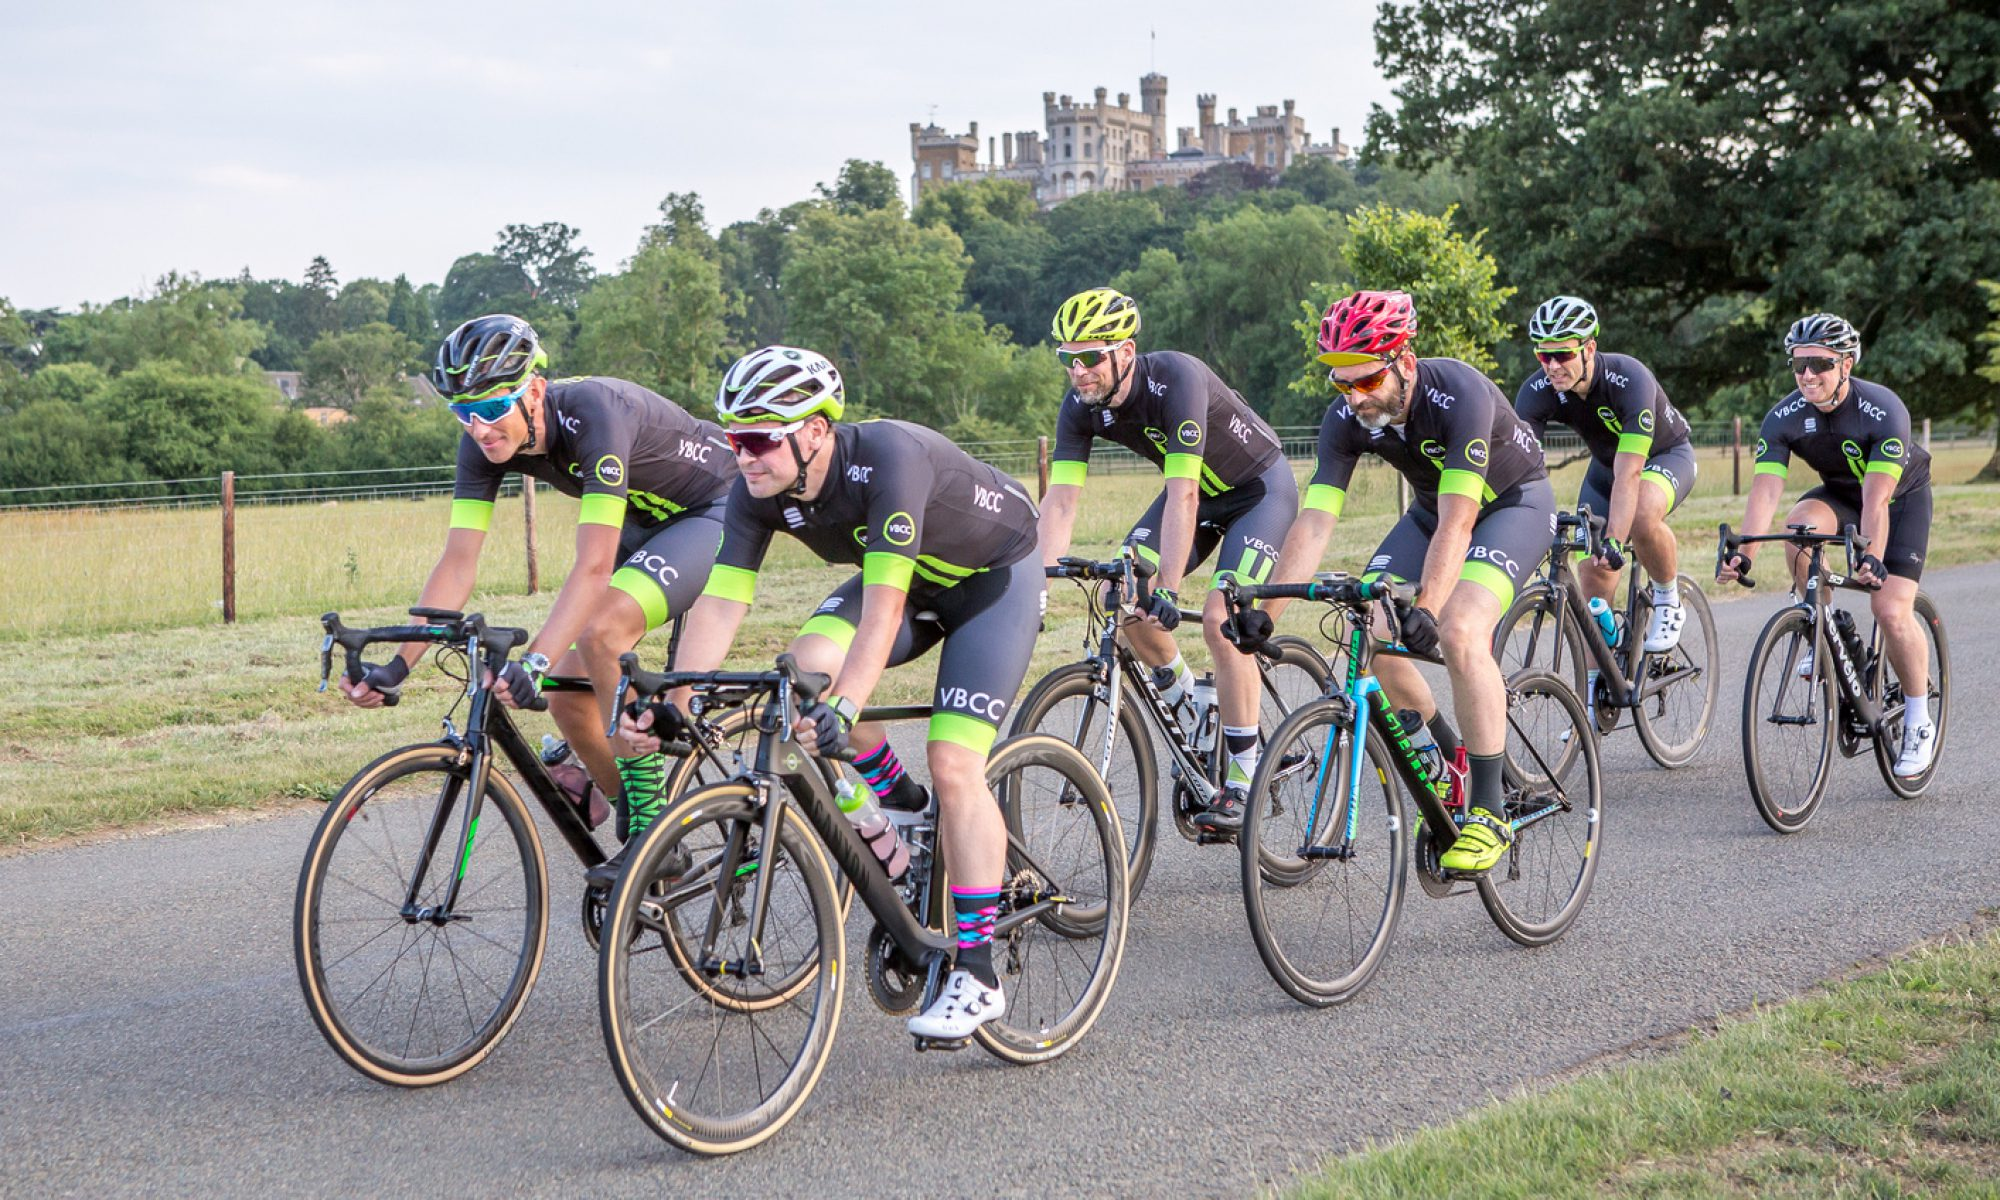 Vale of Belvoir Cycling Club